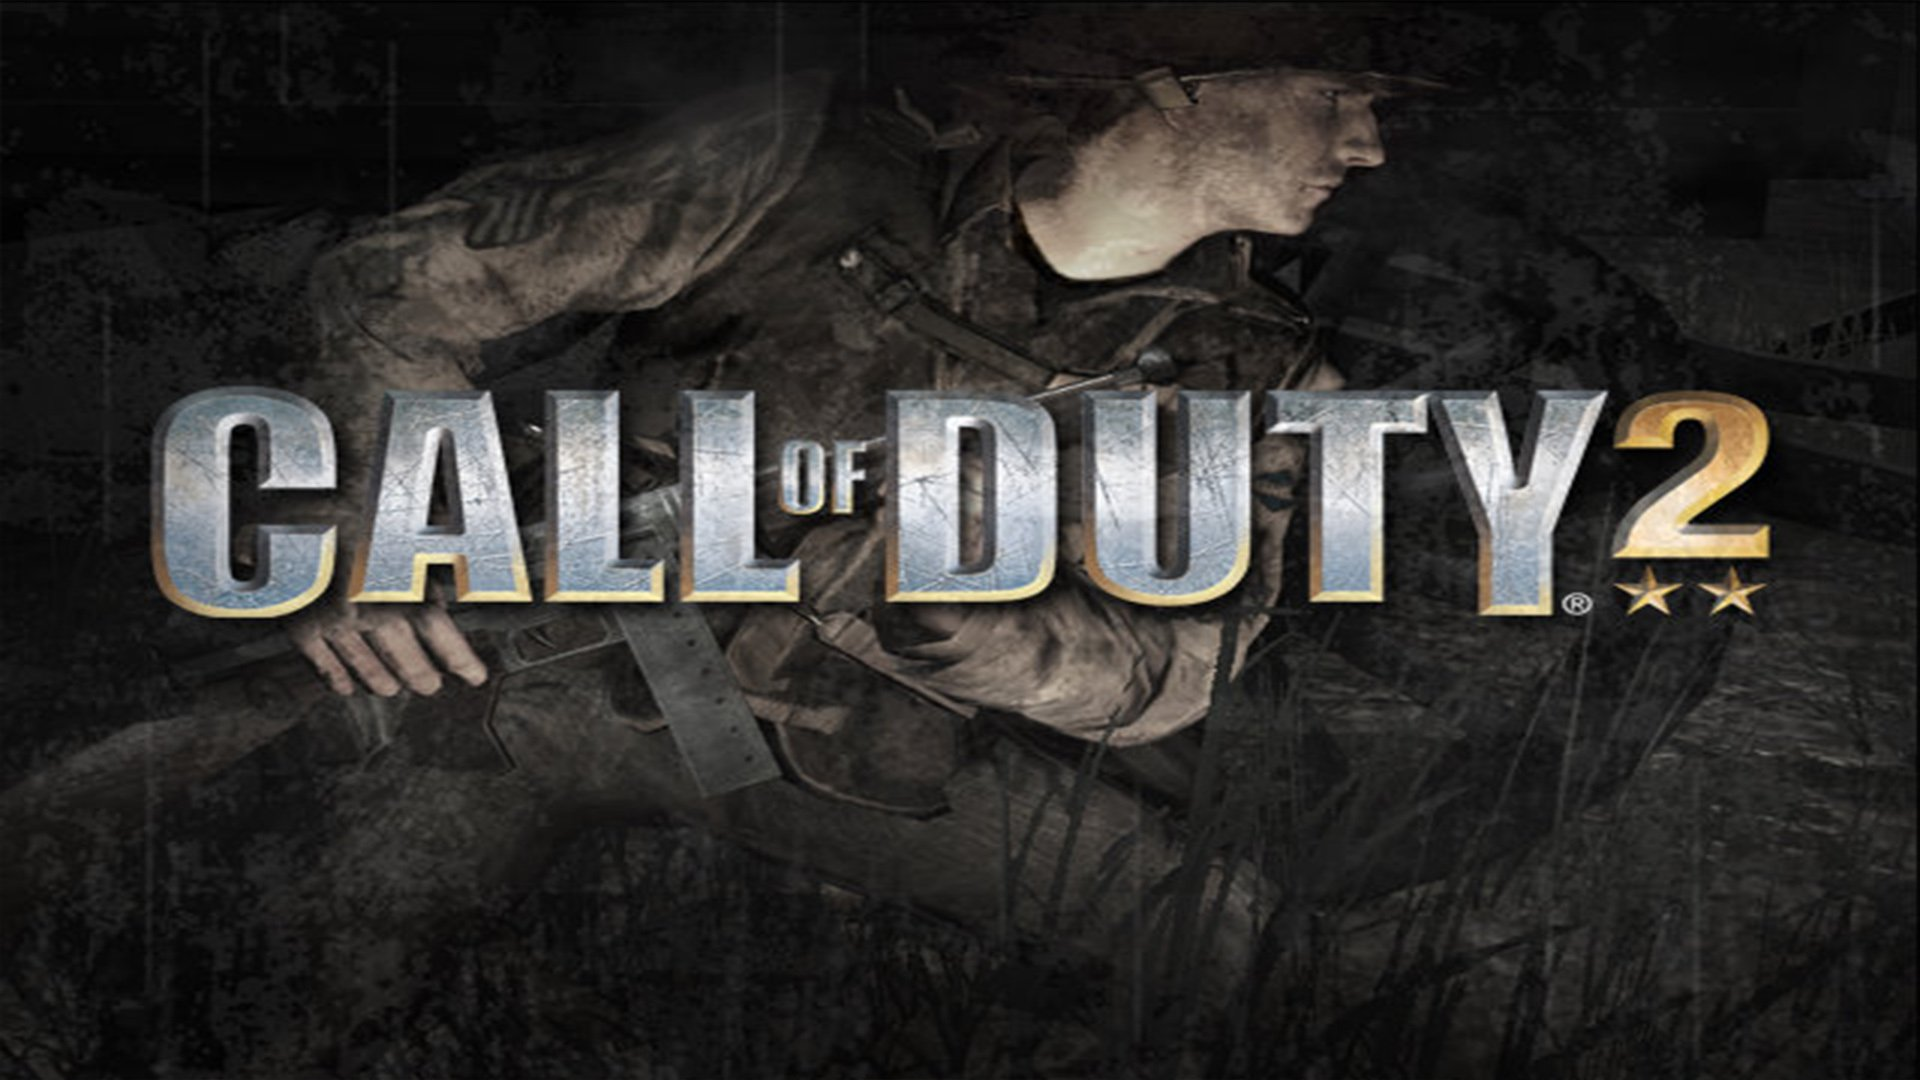 Call Of Duty 2 HD Wallpaper Background Image 1920x1080 1920x1080